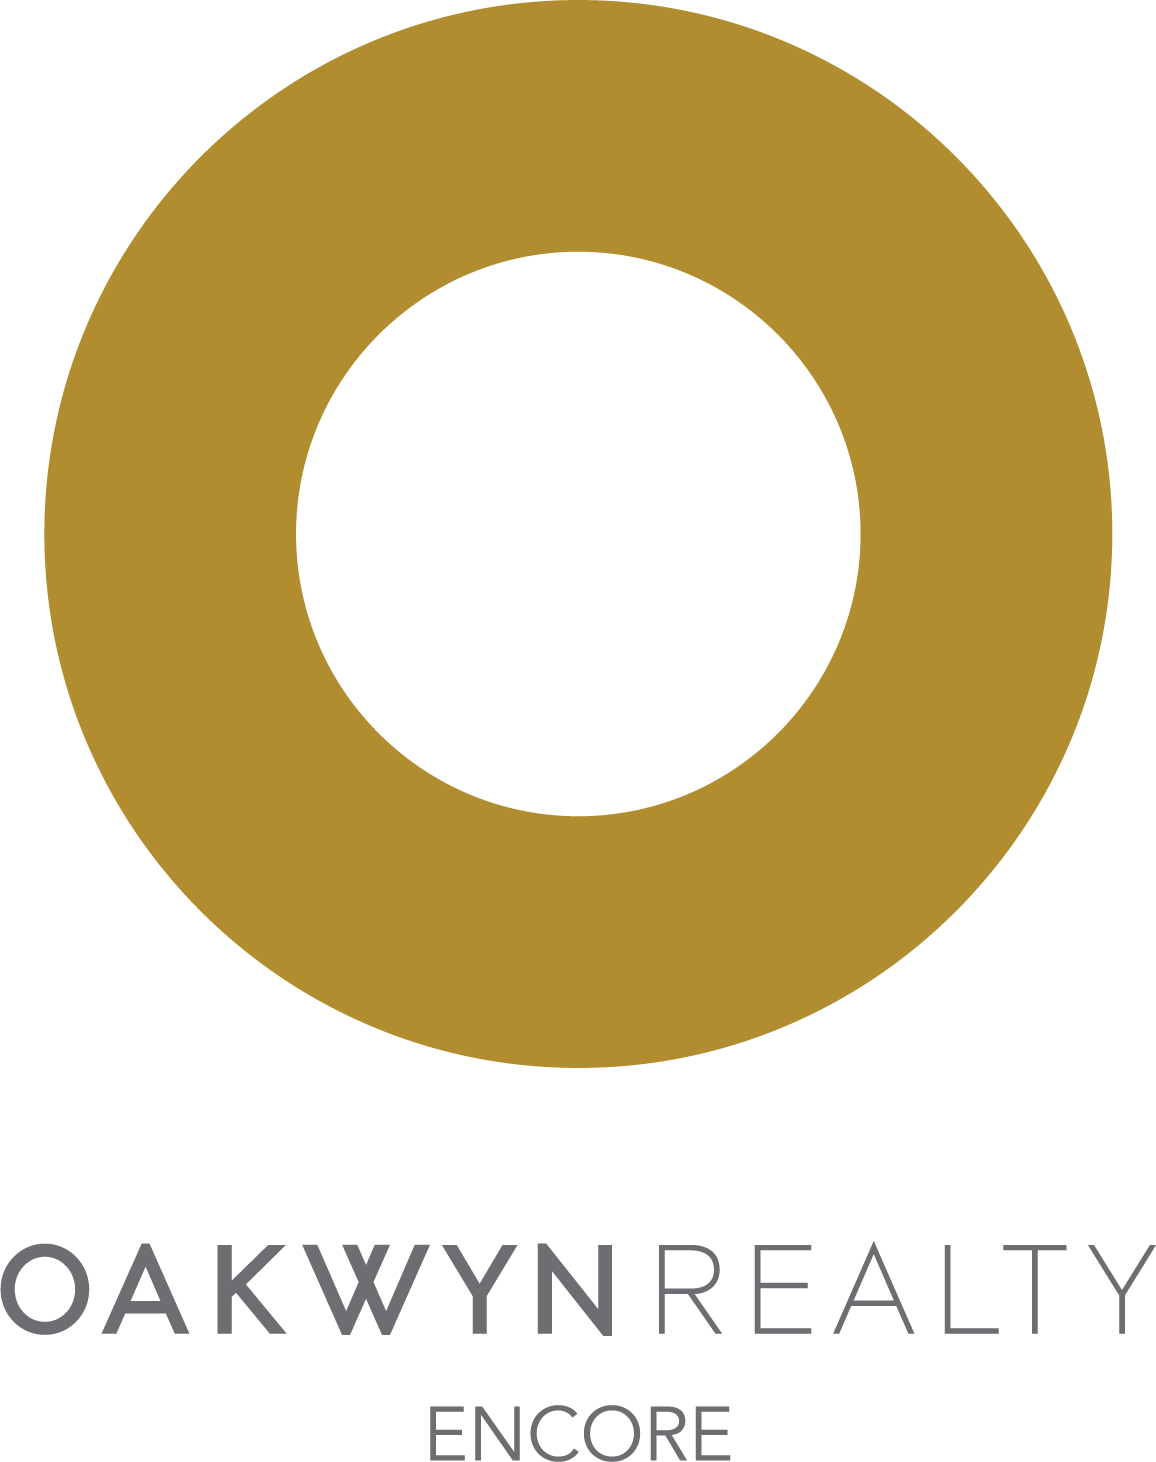 Oakwyn Realty Encore